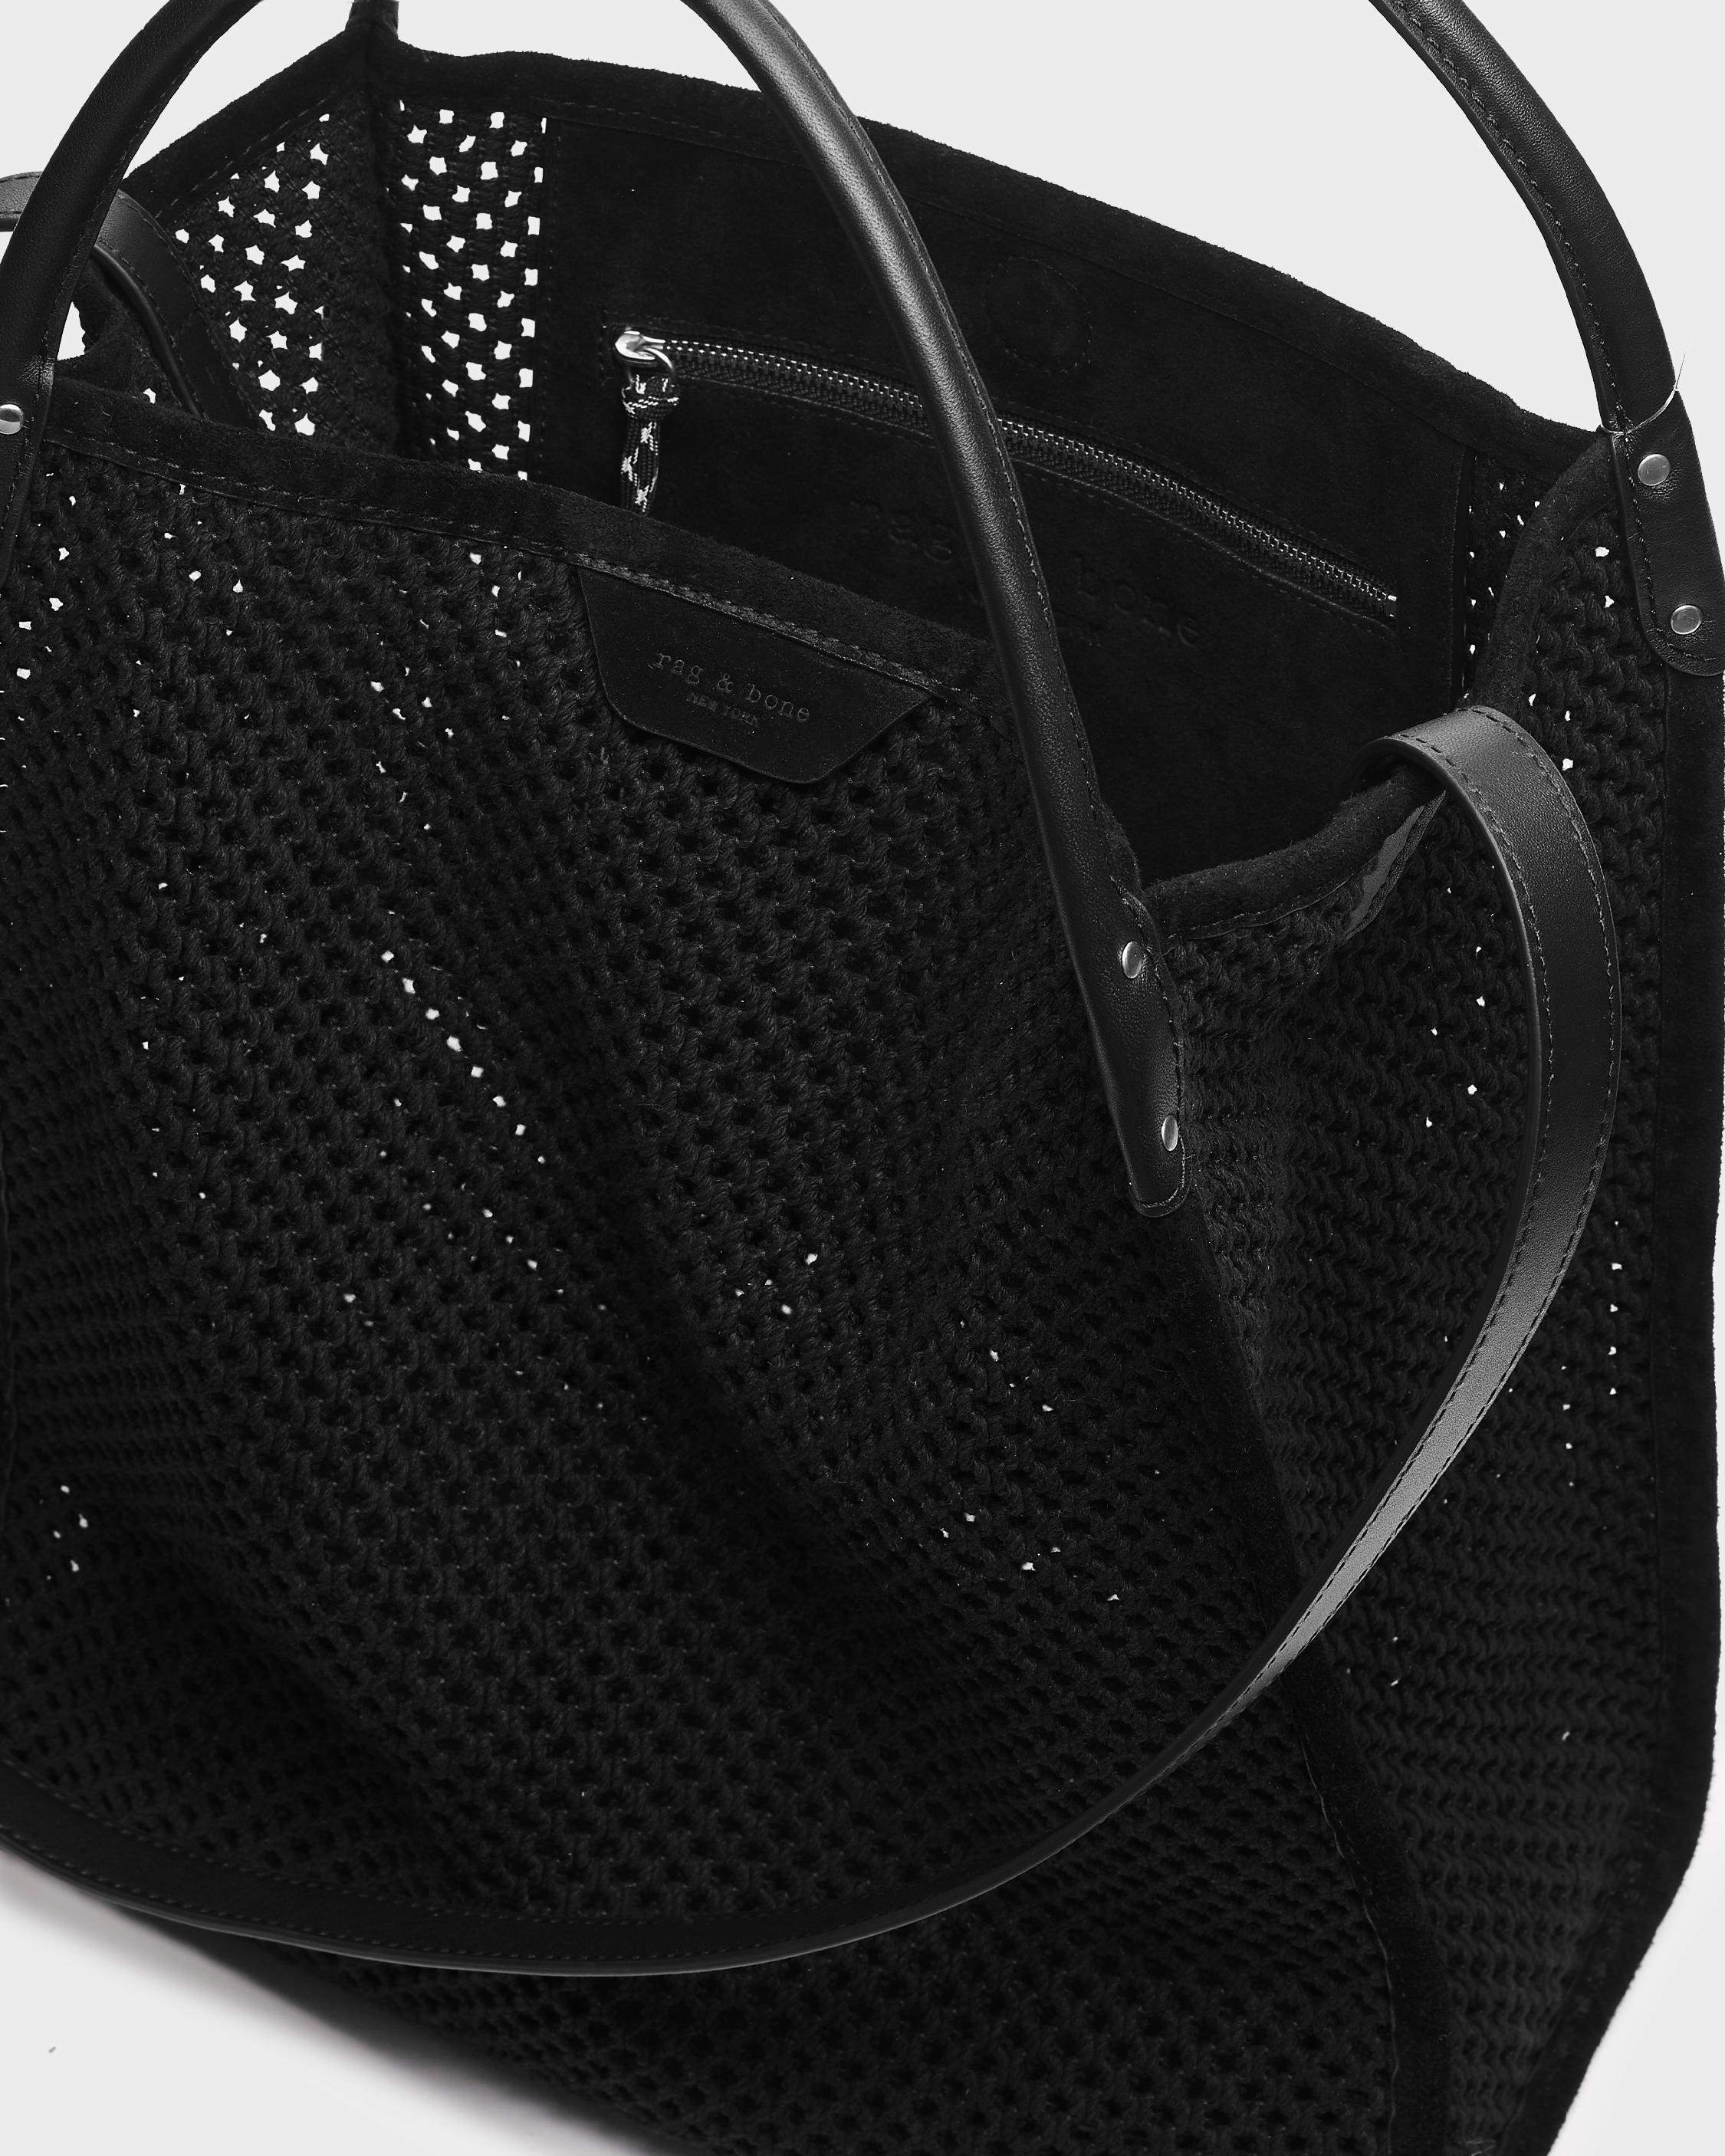 Summer passenger tote - leather and recycled materials 2